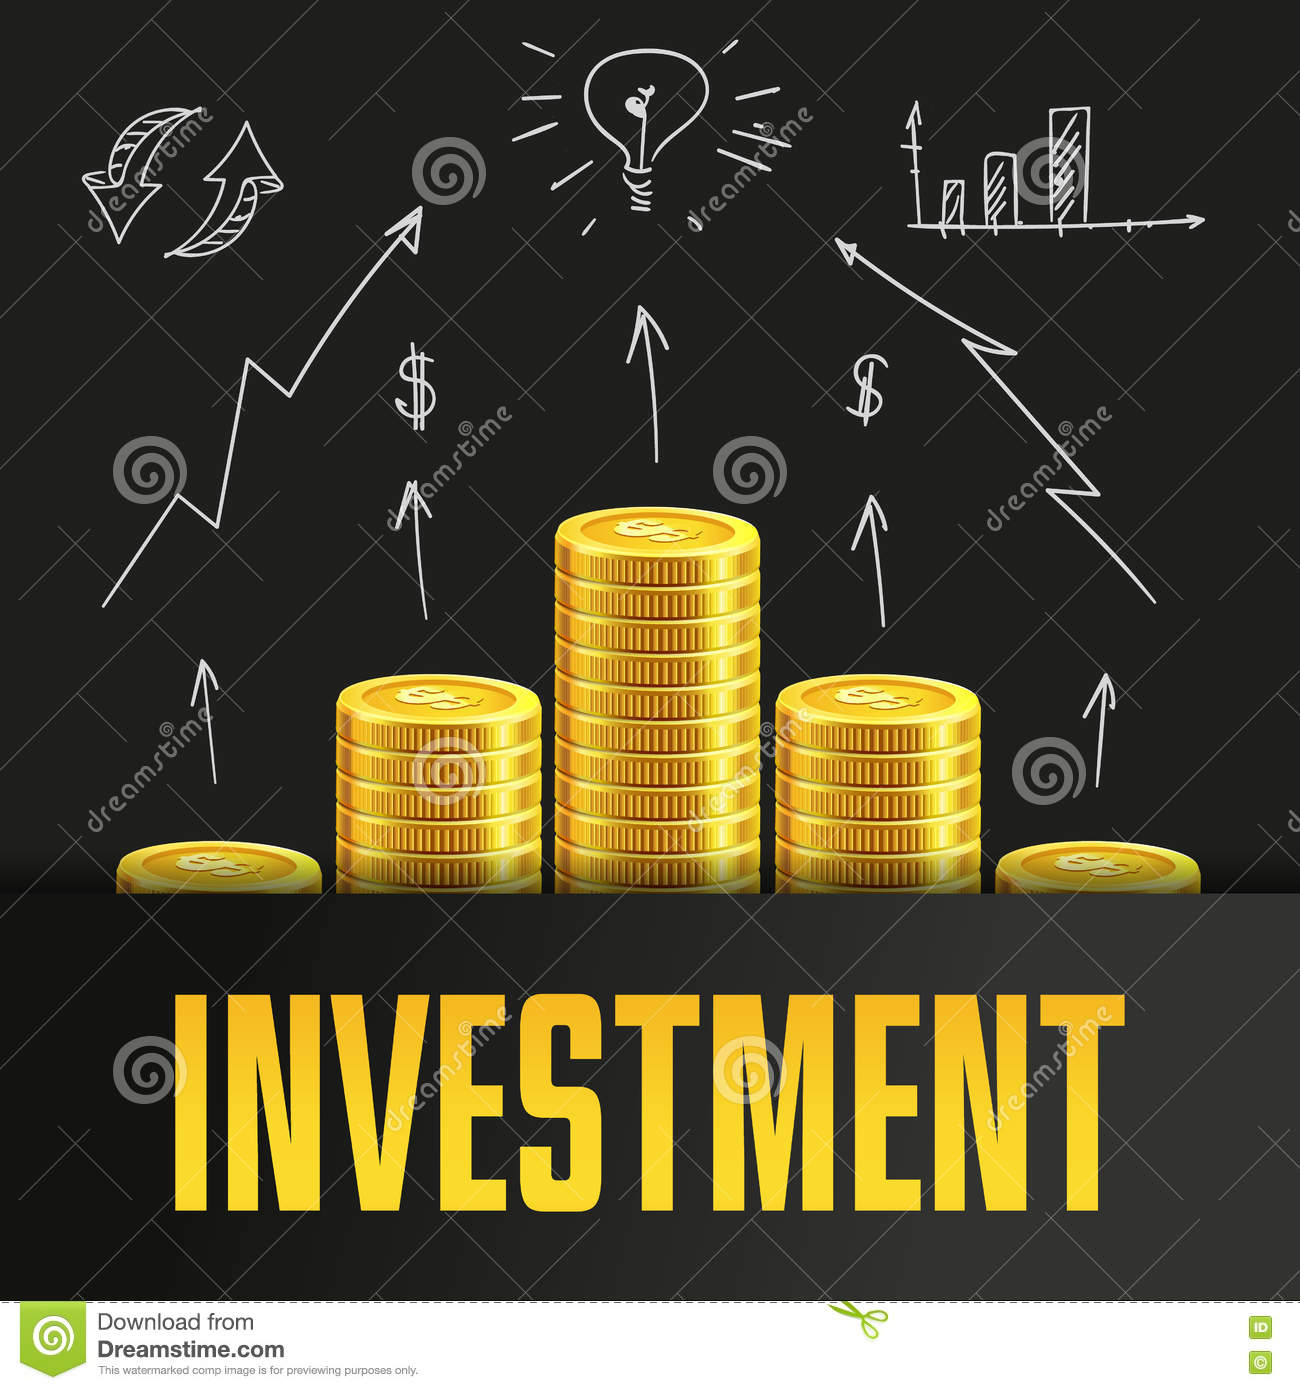 investment poster or banner design template with golden coins  stock vector